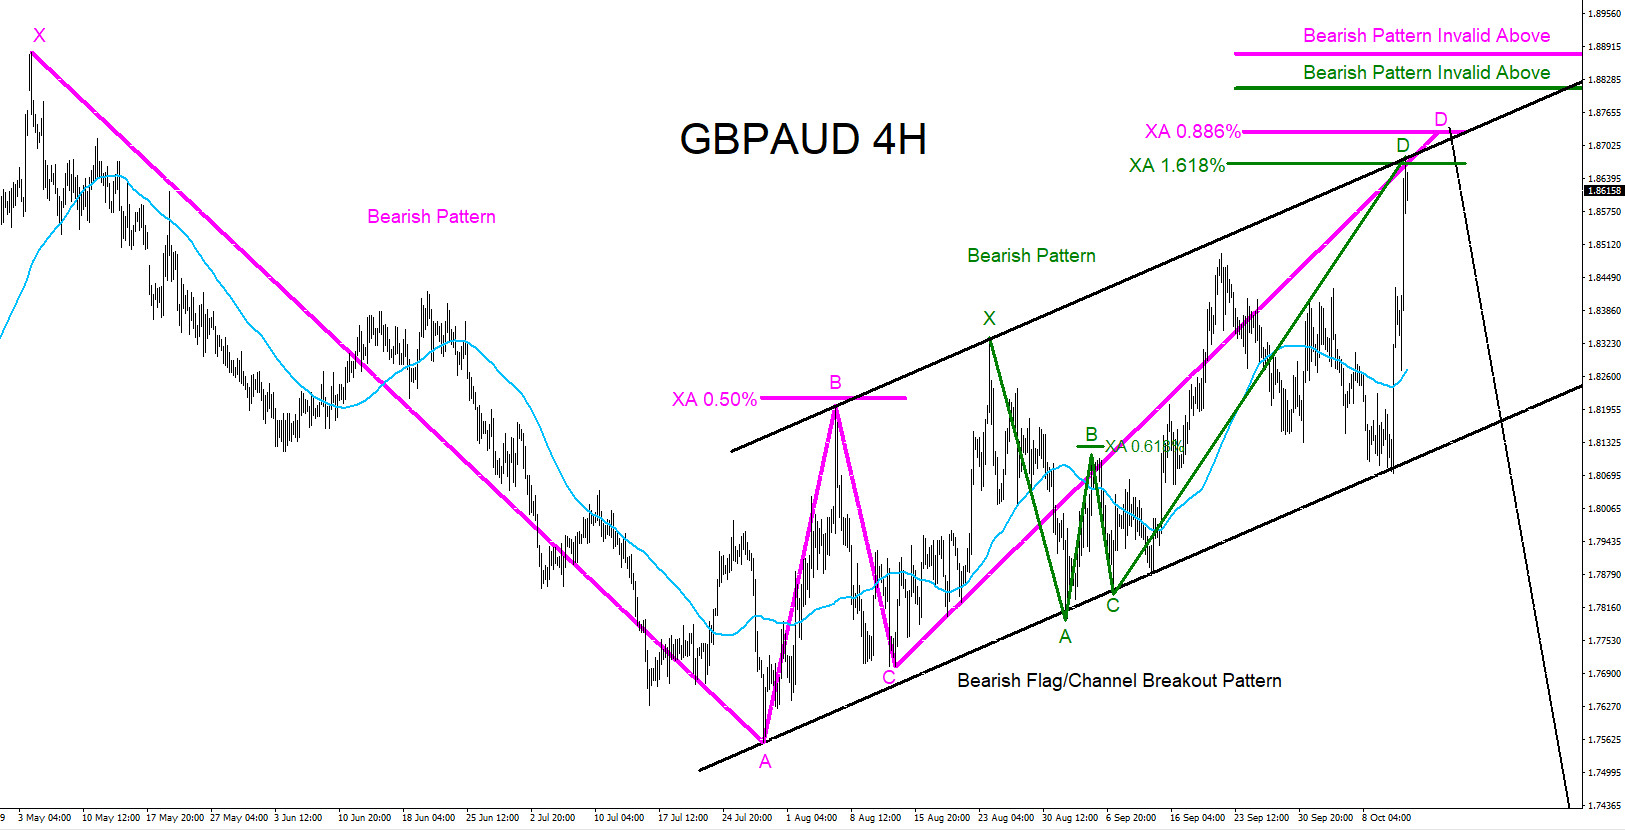 GBPAUD : Watching for Possible Selling Opportunities